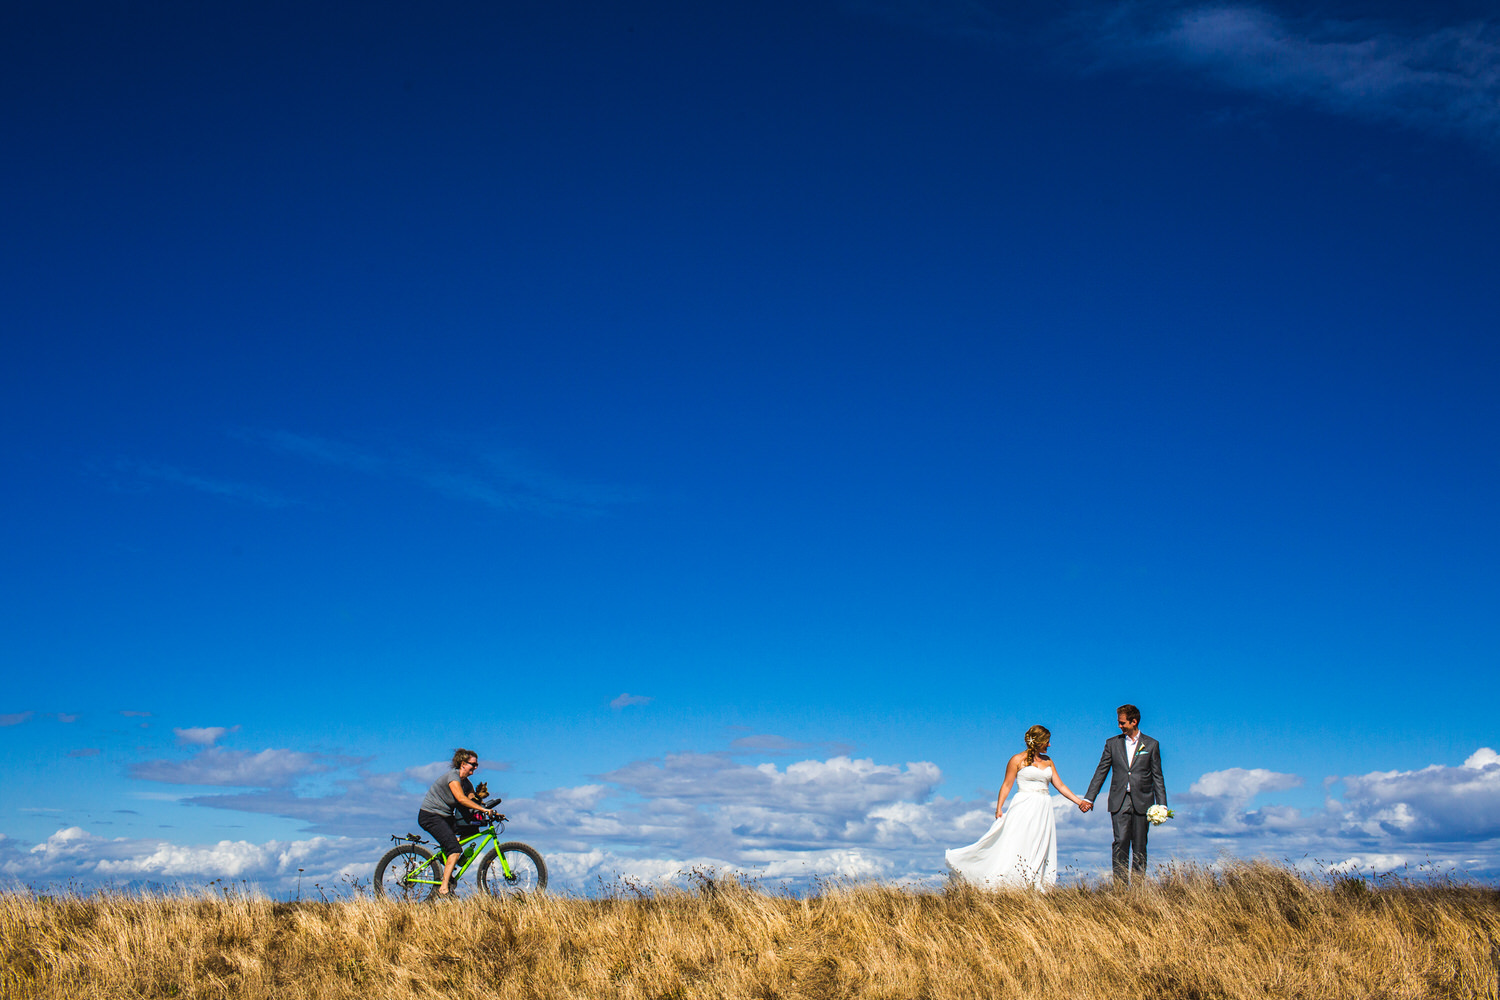 cyclists passes by bride and groom at beach